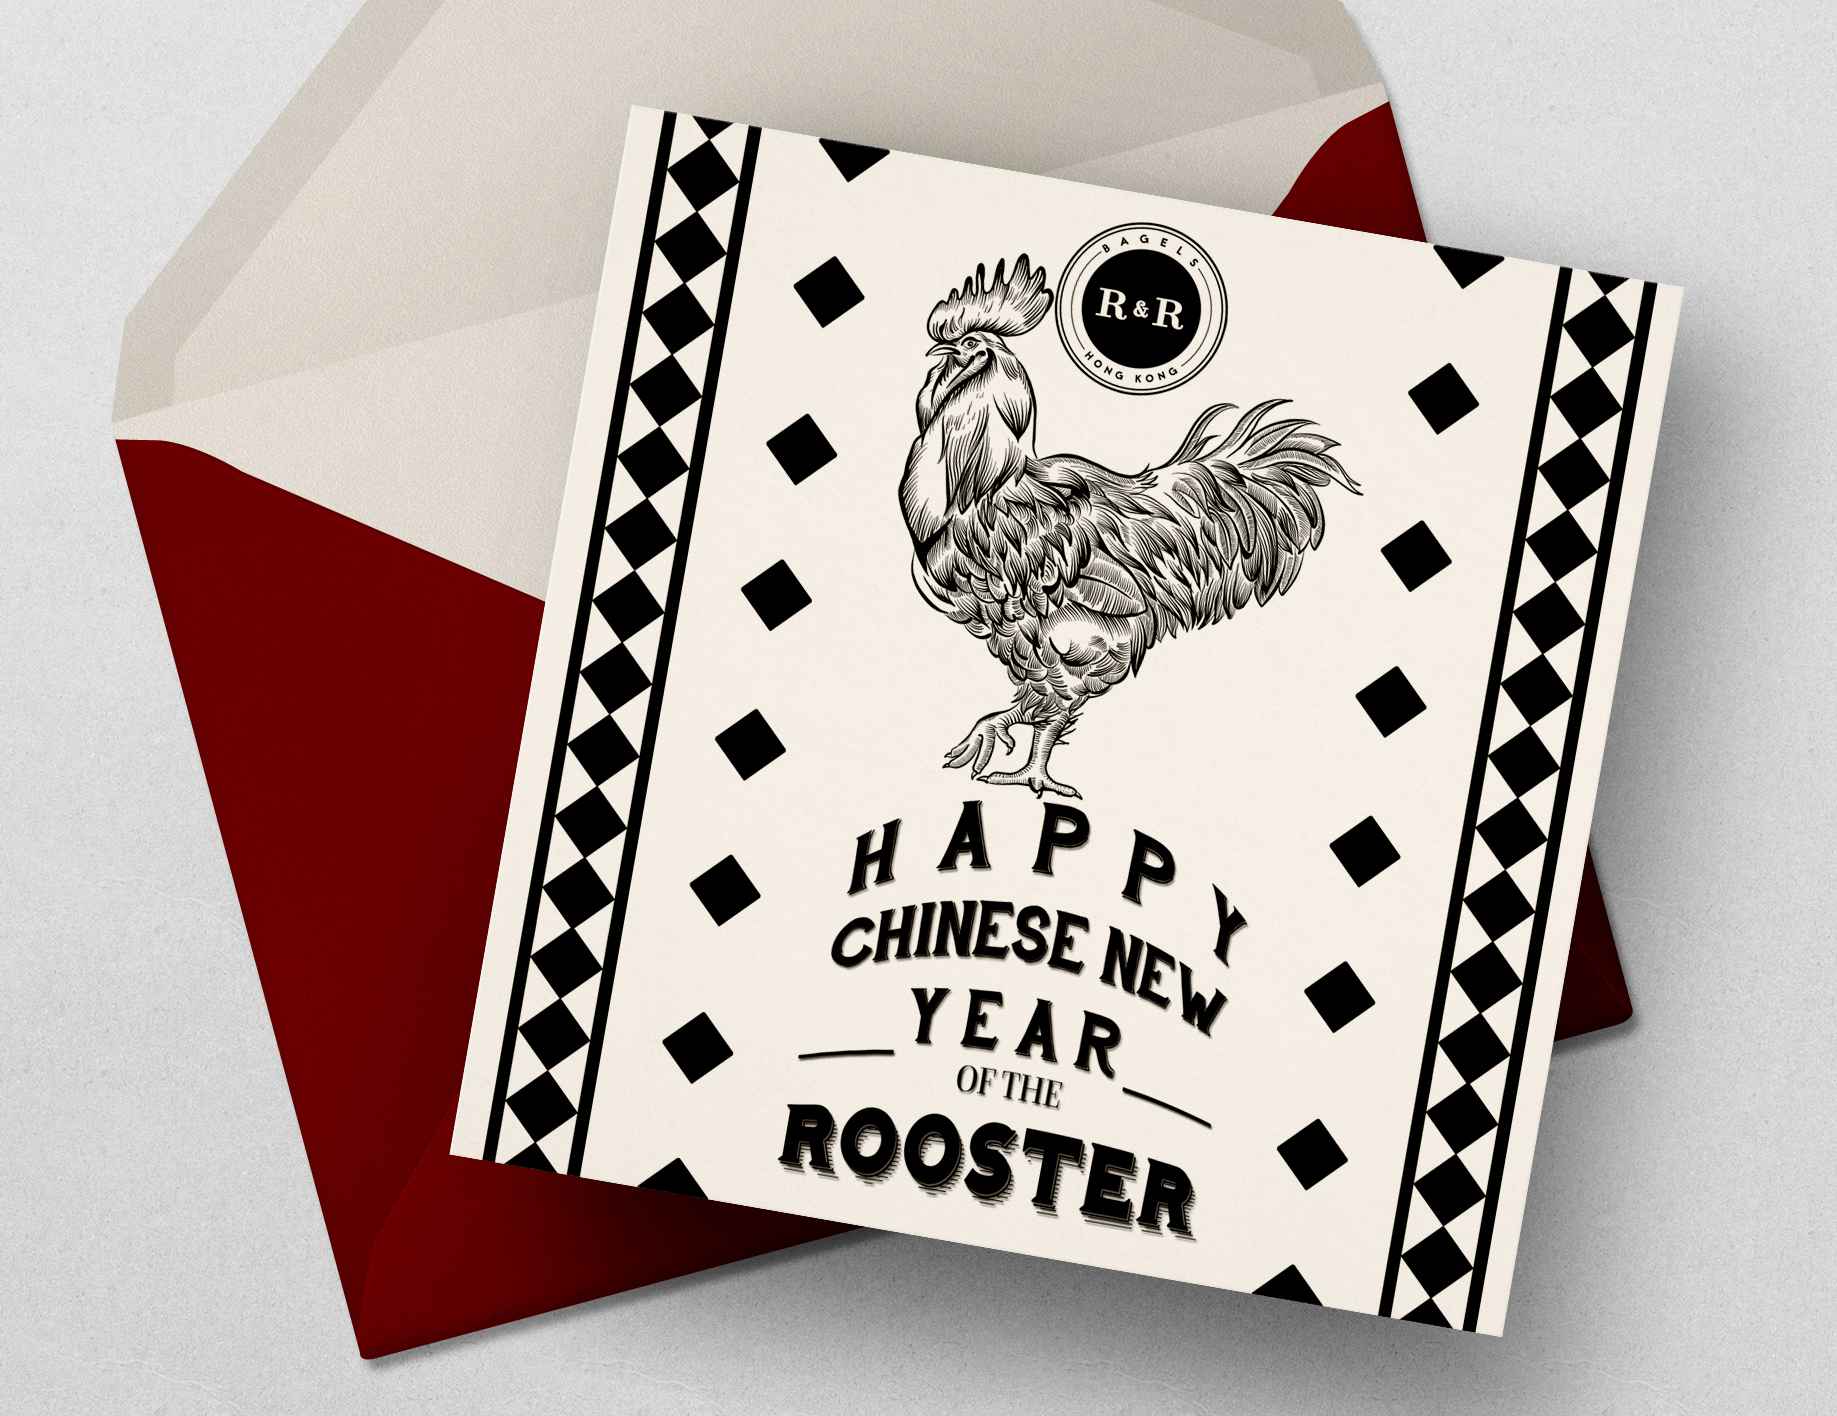 EDM and Social Media Content created for R&R Bagels HK for Chinese New Year.